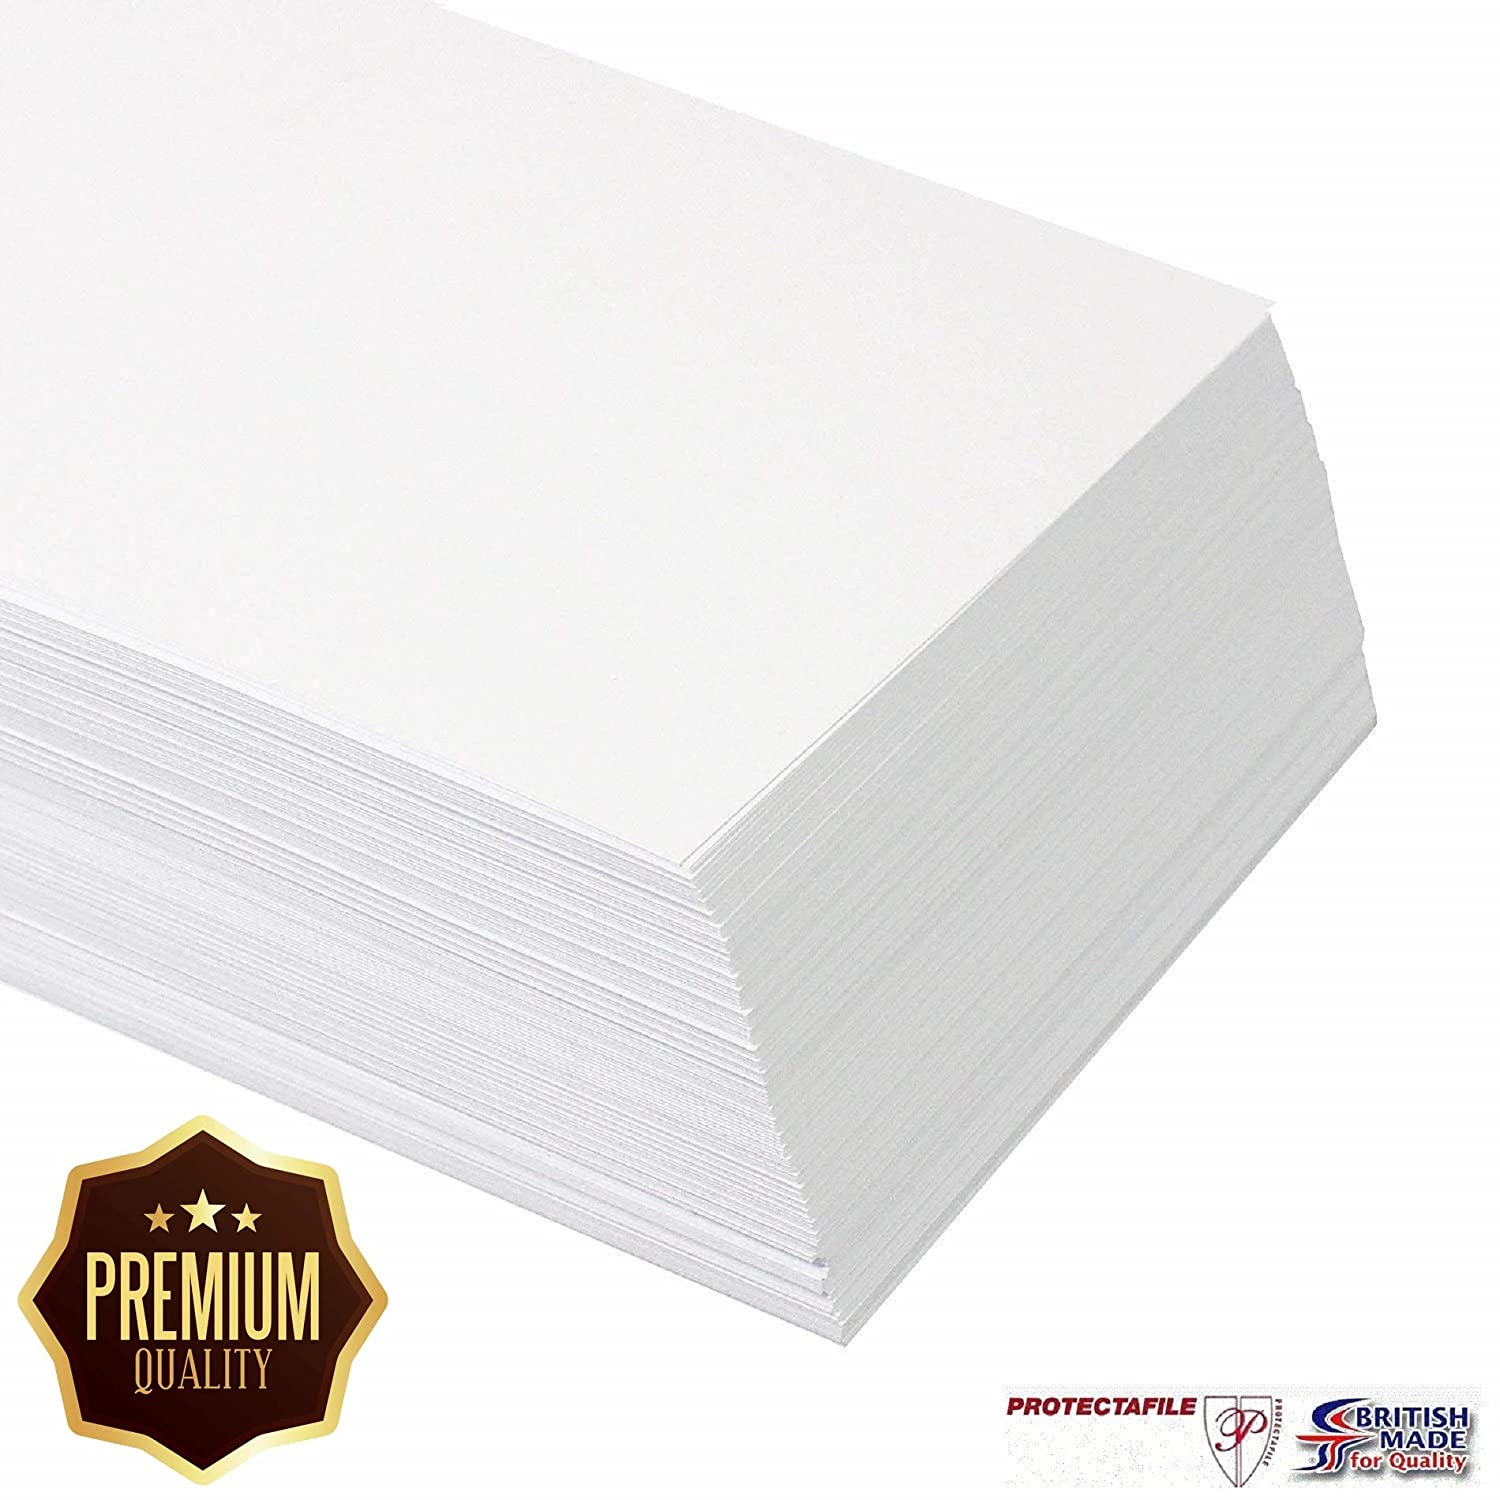 Weddings /& Events 10 x A5 White Premium Blank Invitation Cards 400gsm